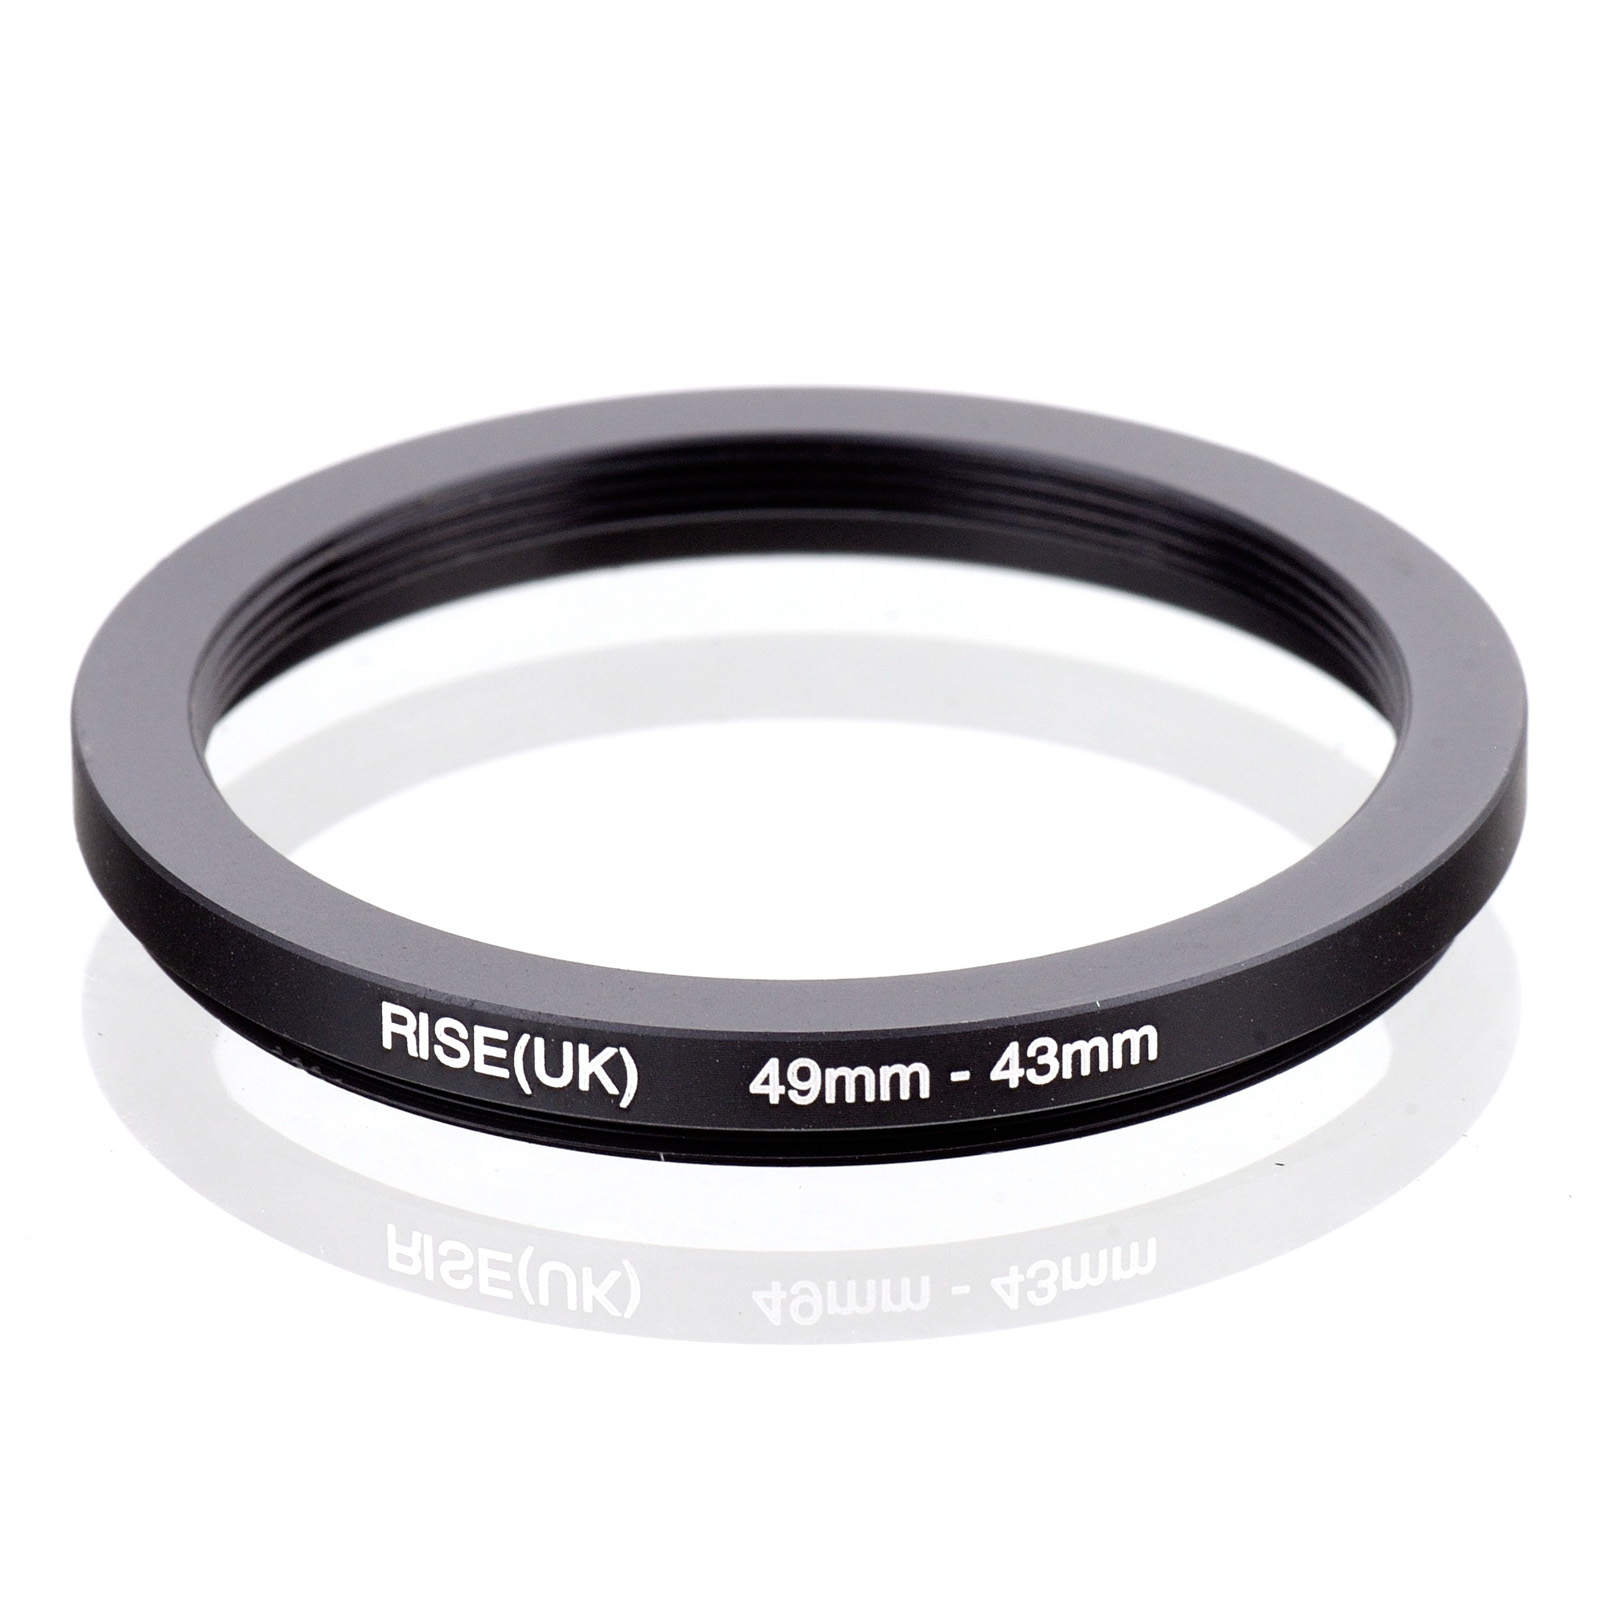 RISE(UK) 49mm-43mm 49-43 Mm 49 To 43 Step Down Filter Ring Adapter